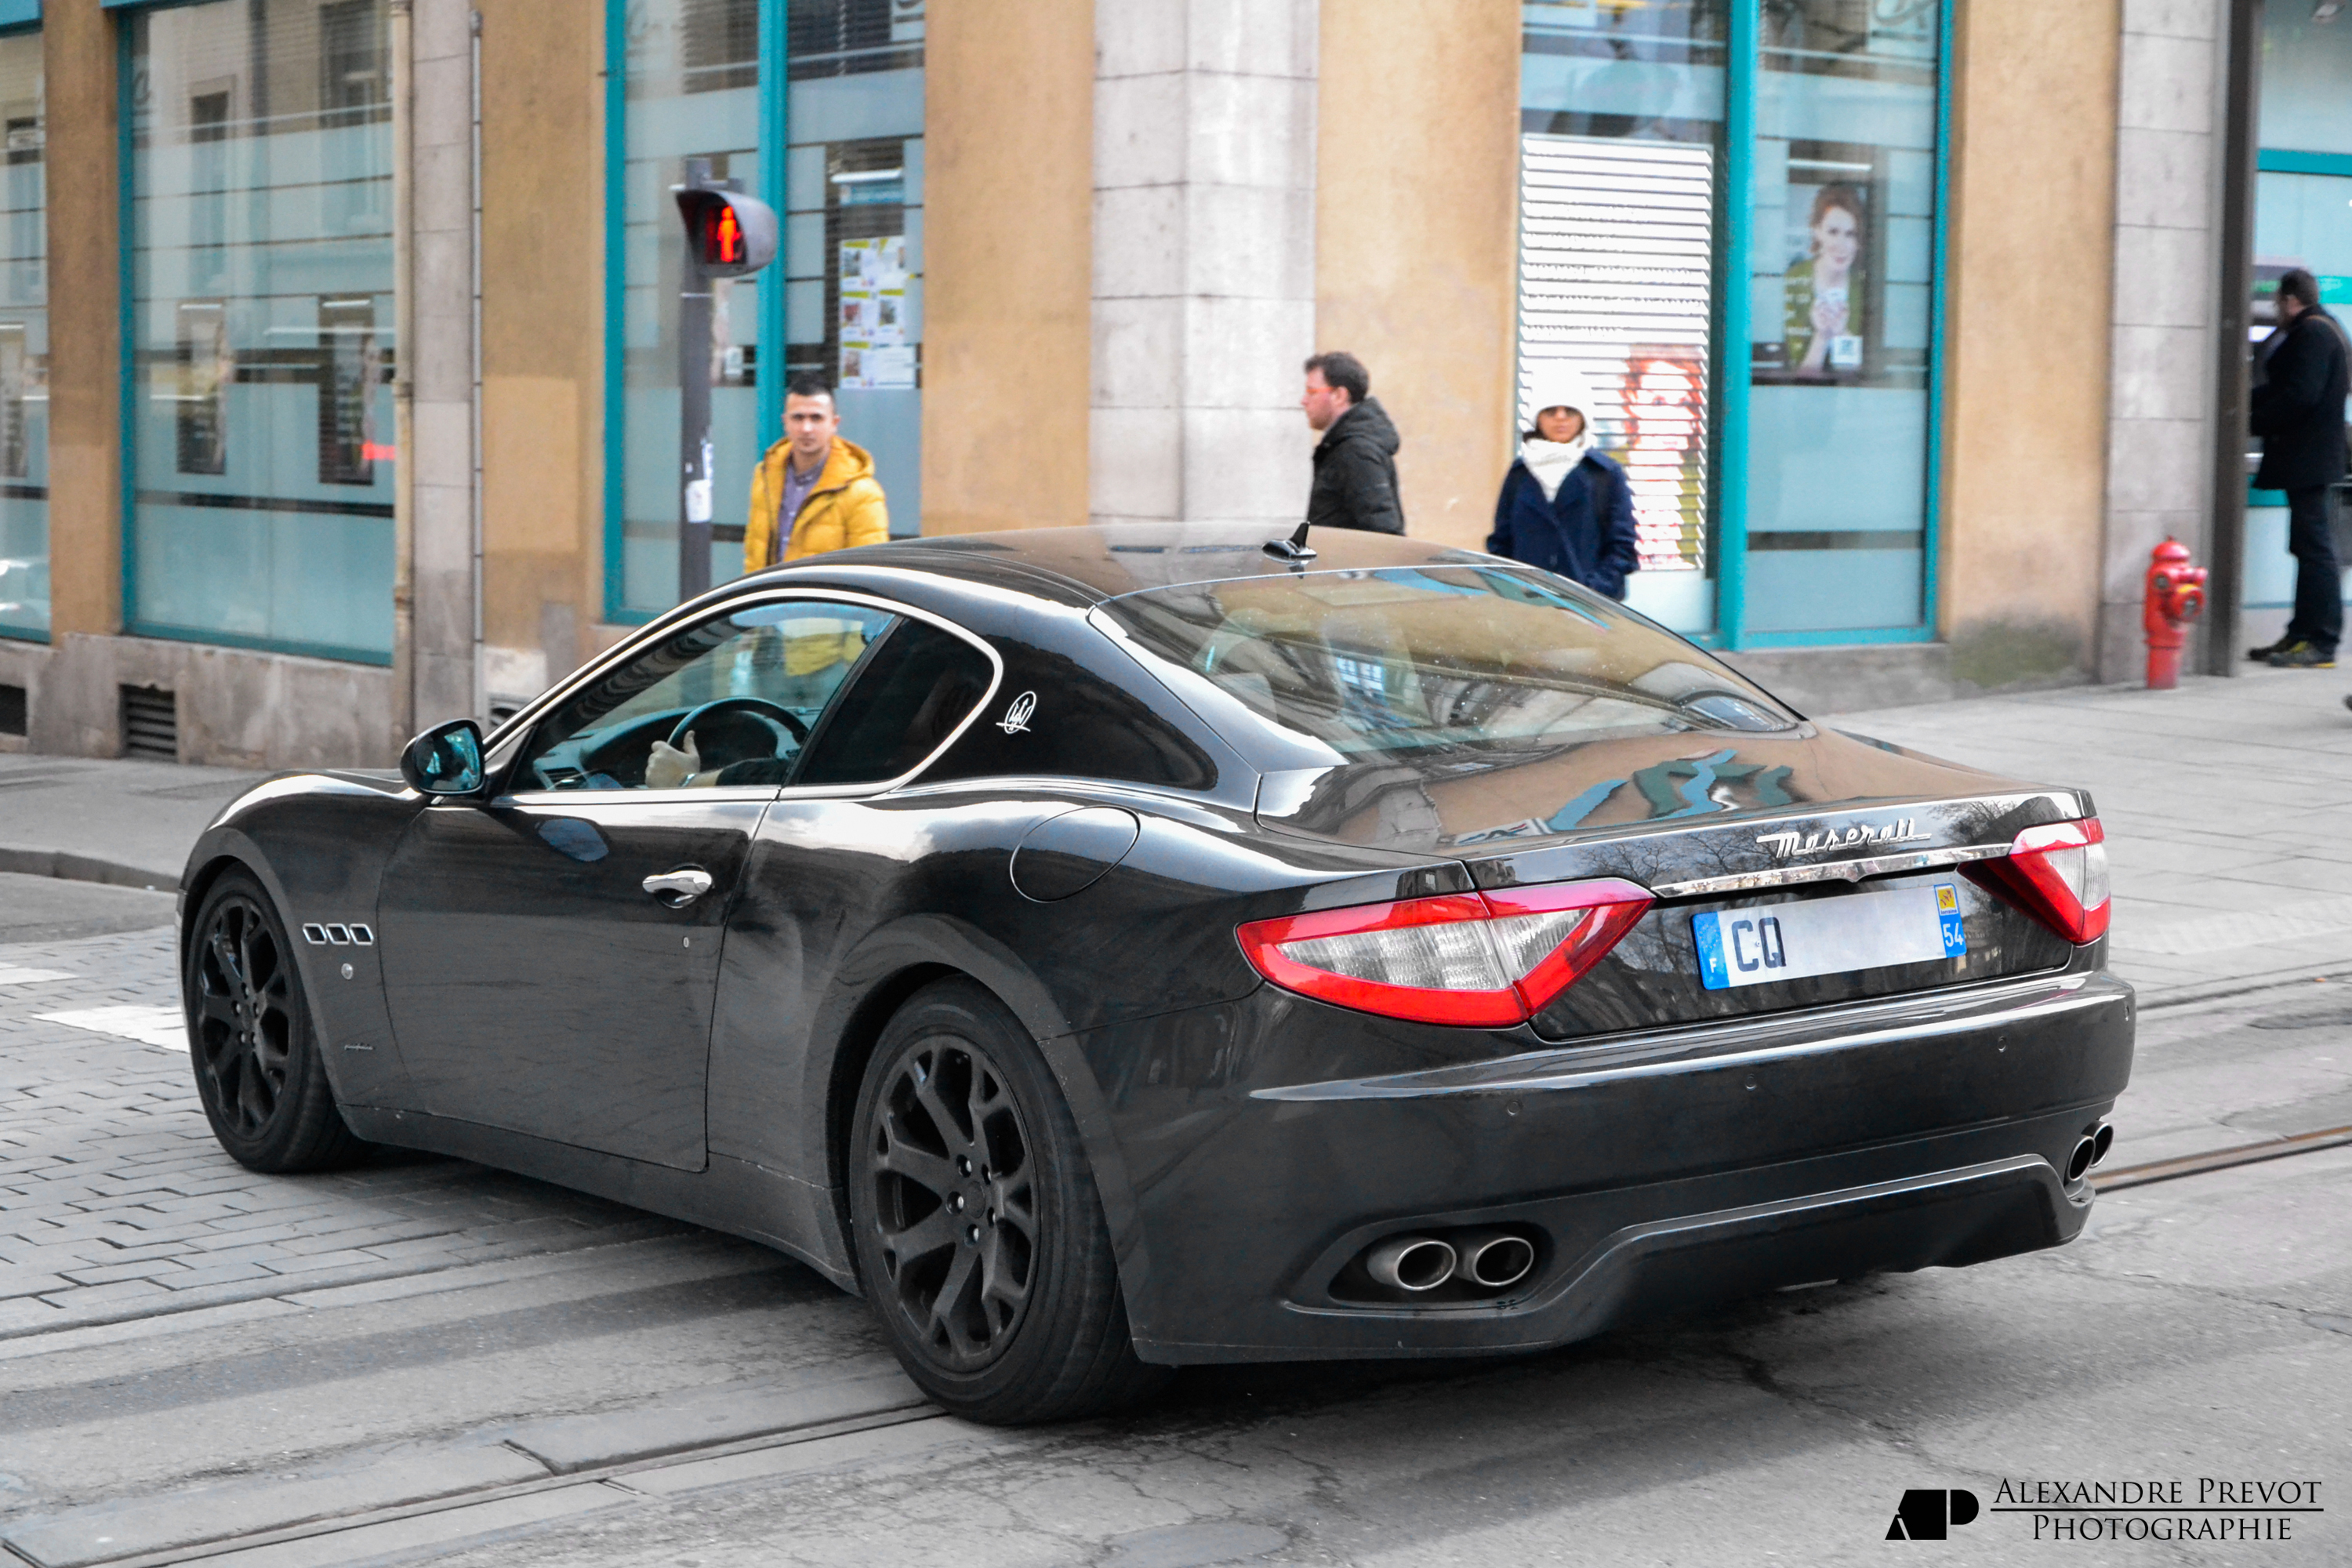 Maserati Sebring Design Envisions A More Sophisticated